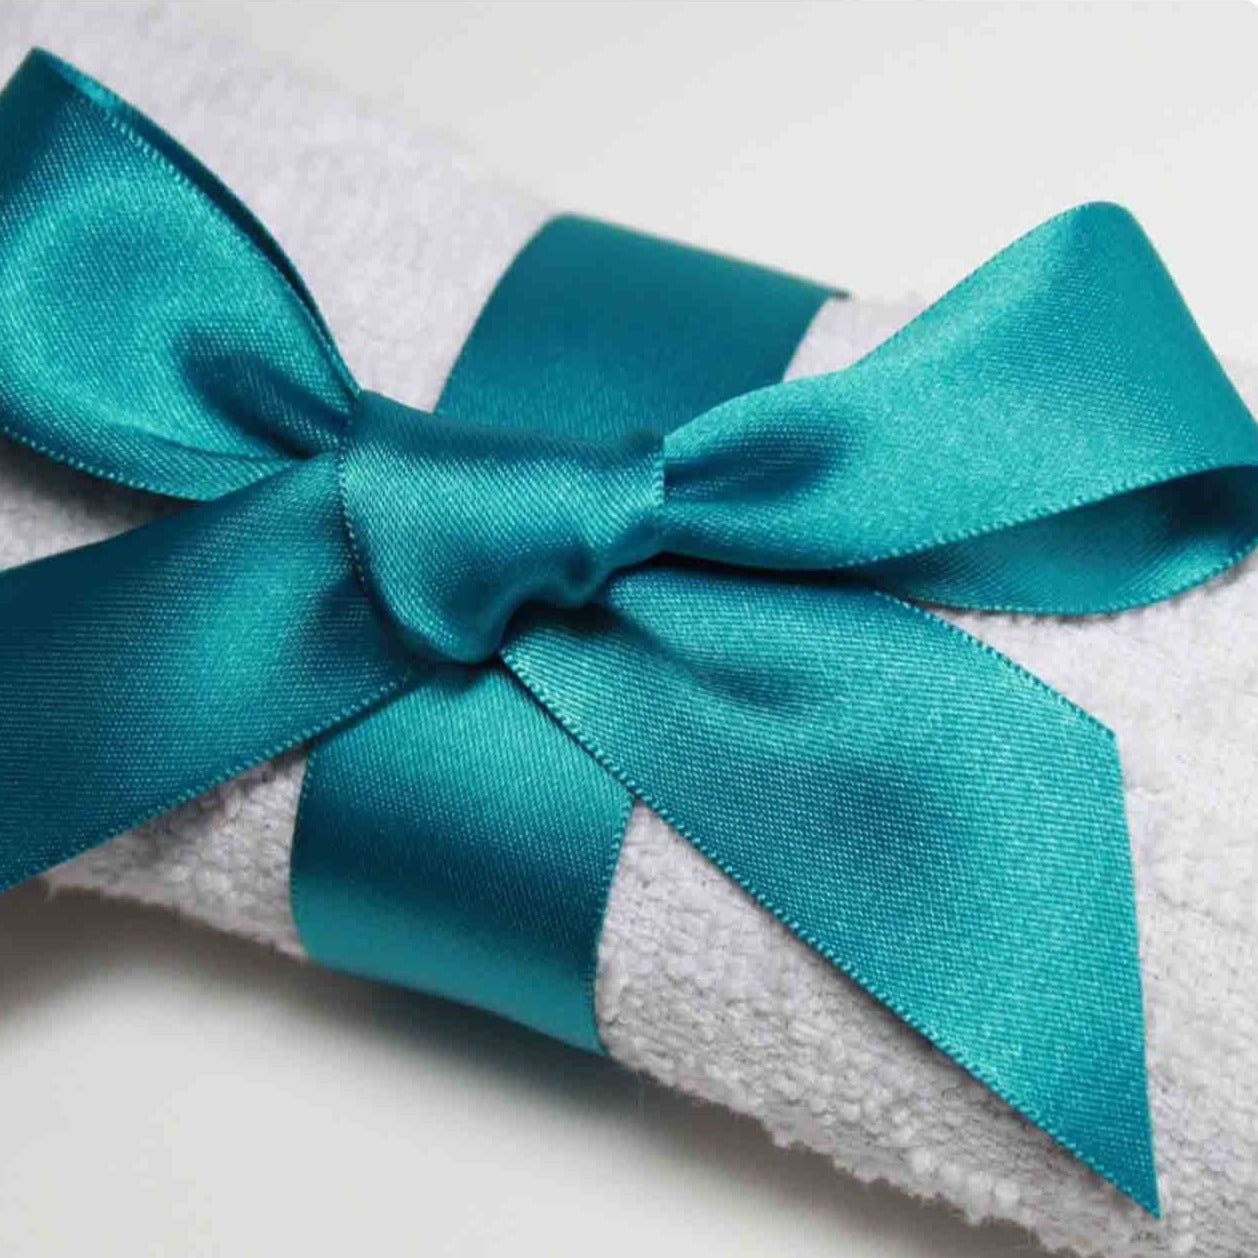 Berisfords Satin Ribbon - Malibu Blue